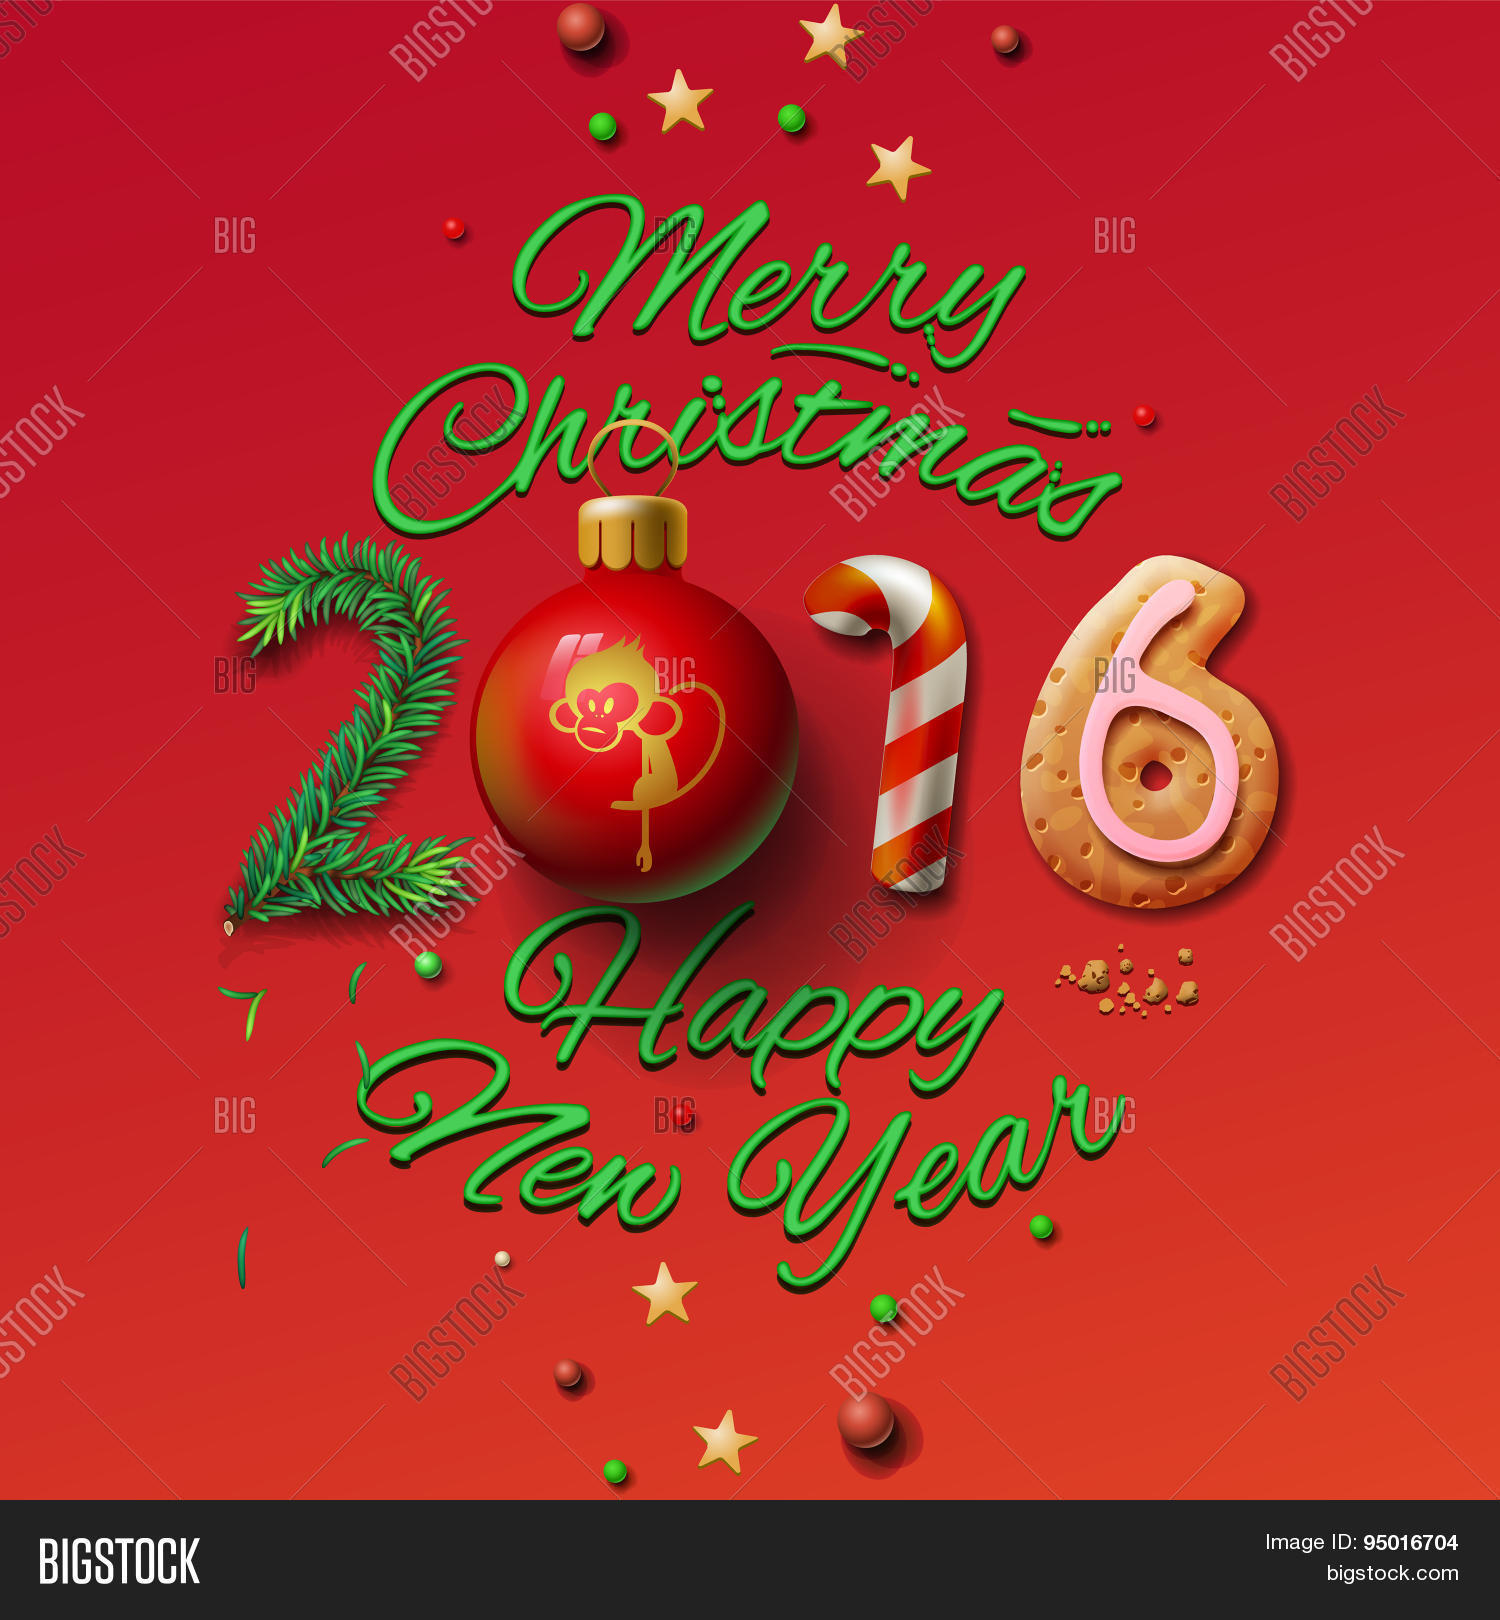 Happy New Year 2016 Greeting Card and Merry Christmas 3026d39257